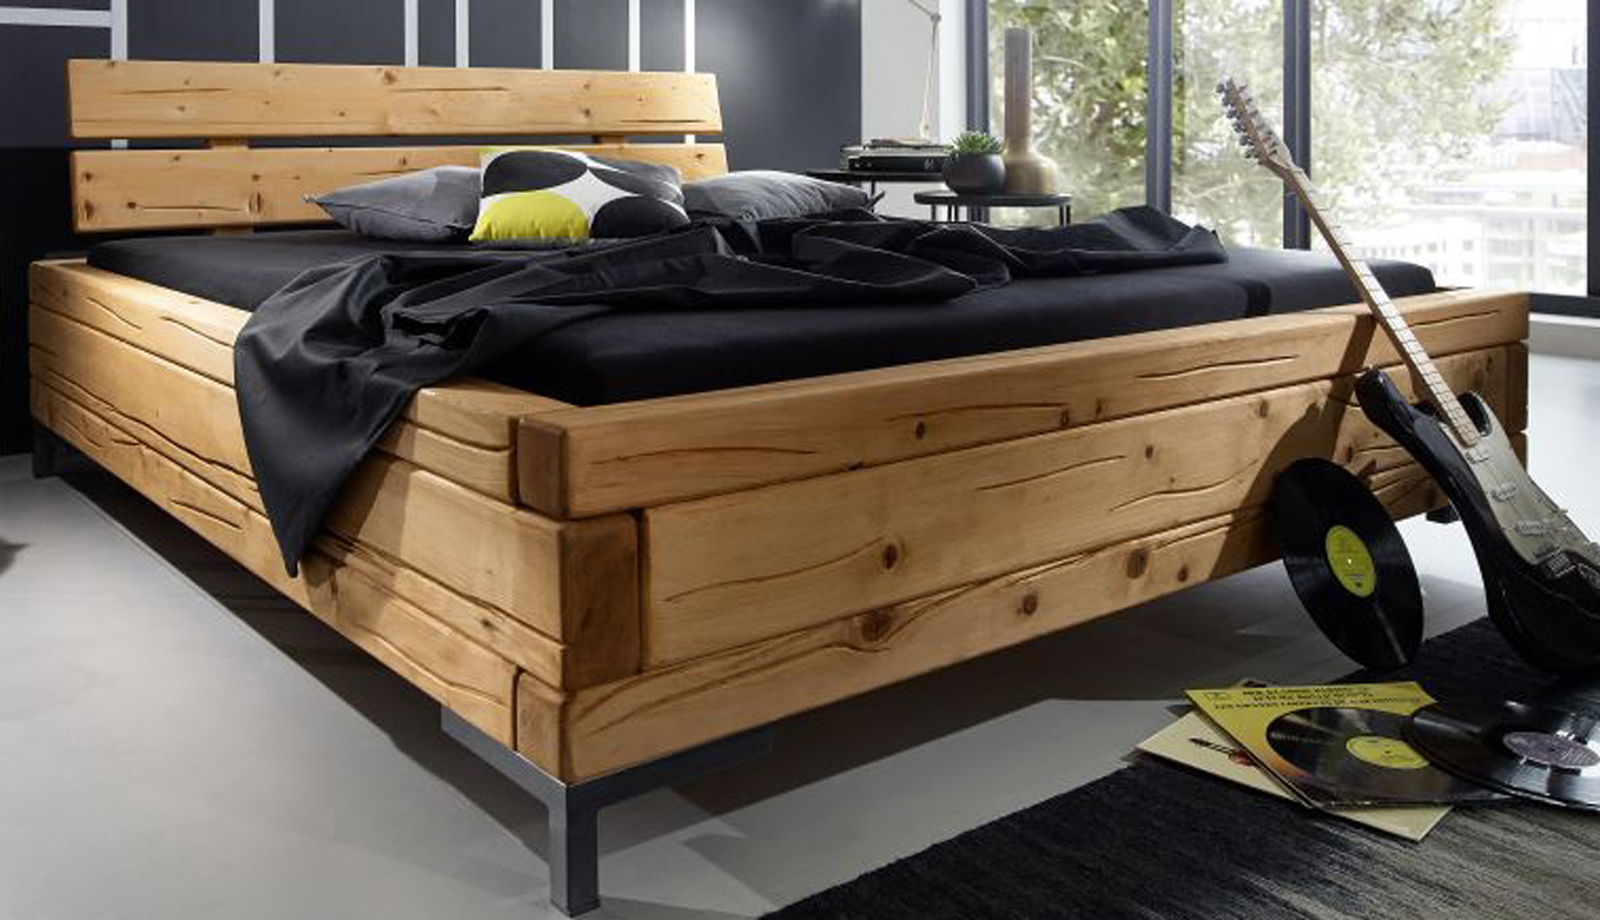 sam balkenbett holzbett 180 x 200 cm fichte eichefarben svantje demn chst. Black Bedroom Furniture Sets. Home Design Ideas